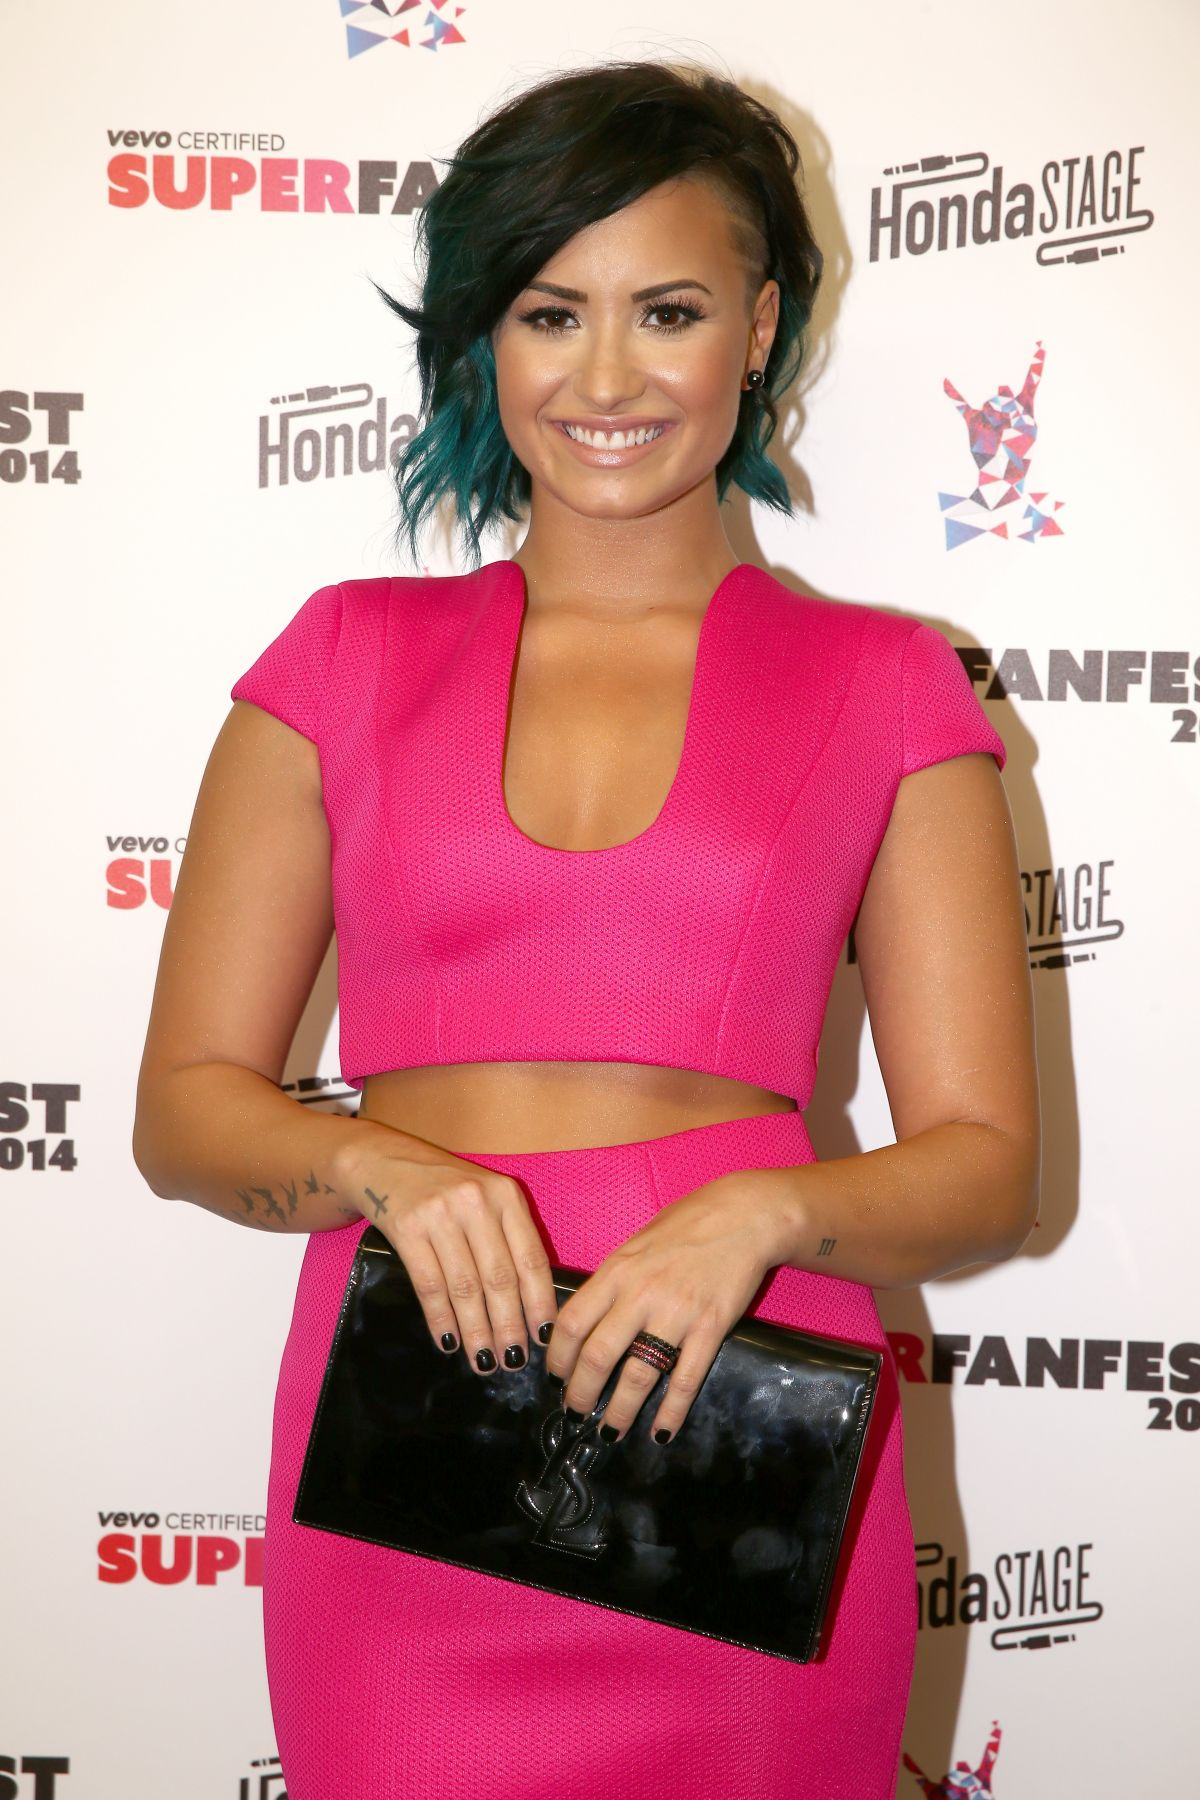 DEMI LOVATO at Vevo Certified Superfanfest in Santa Monica